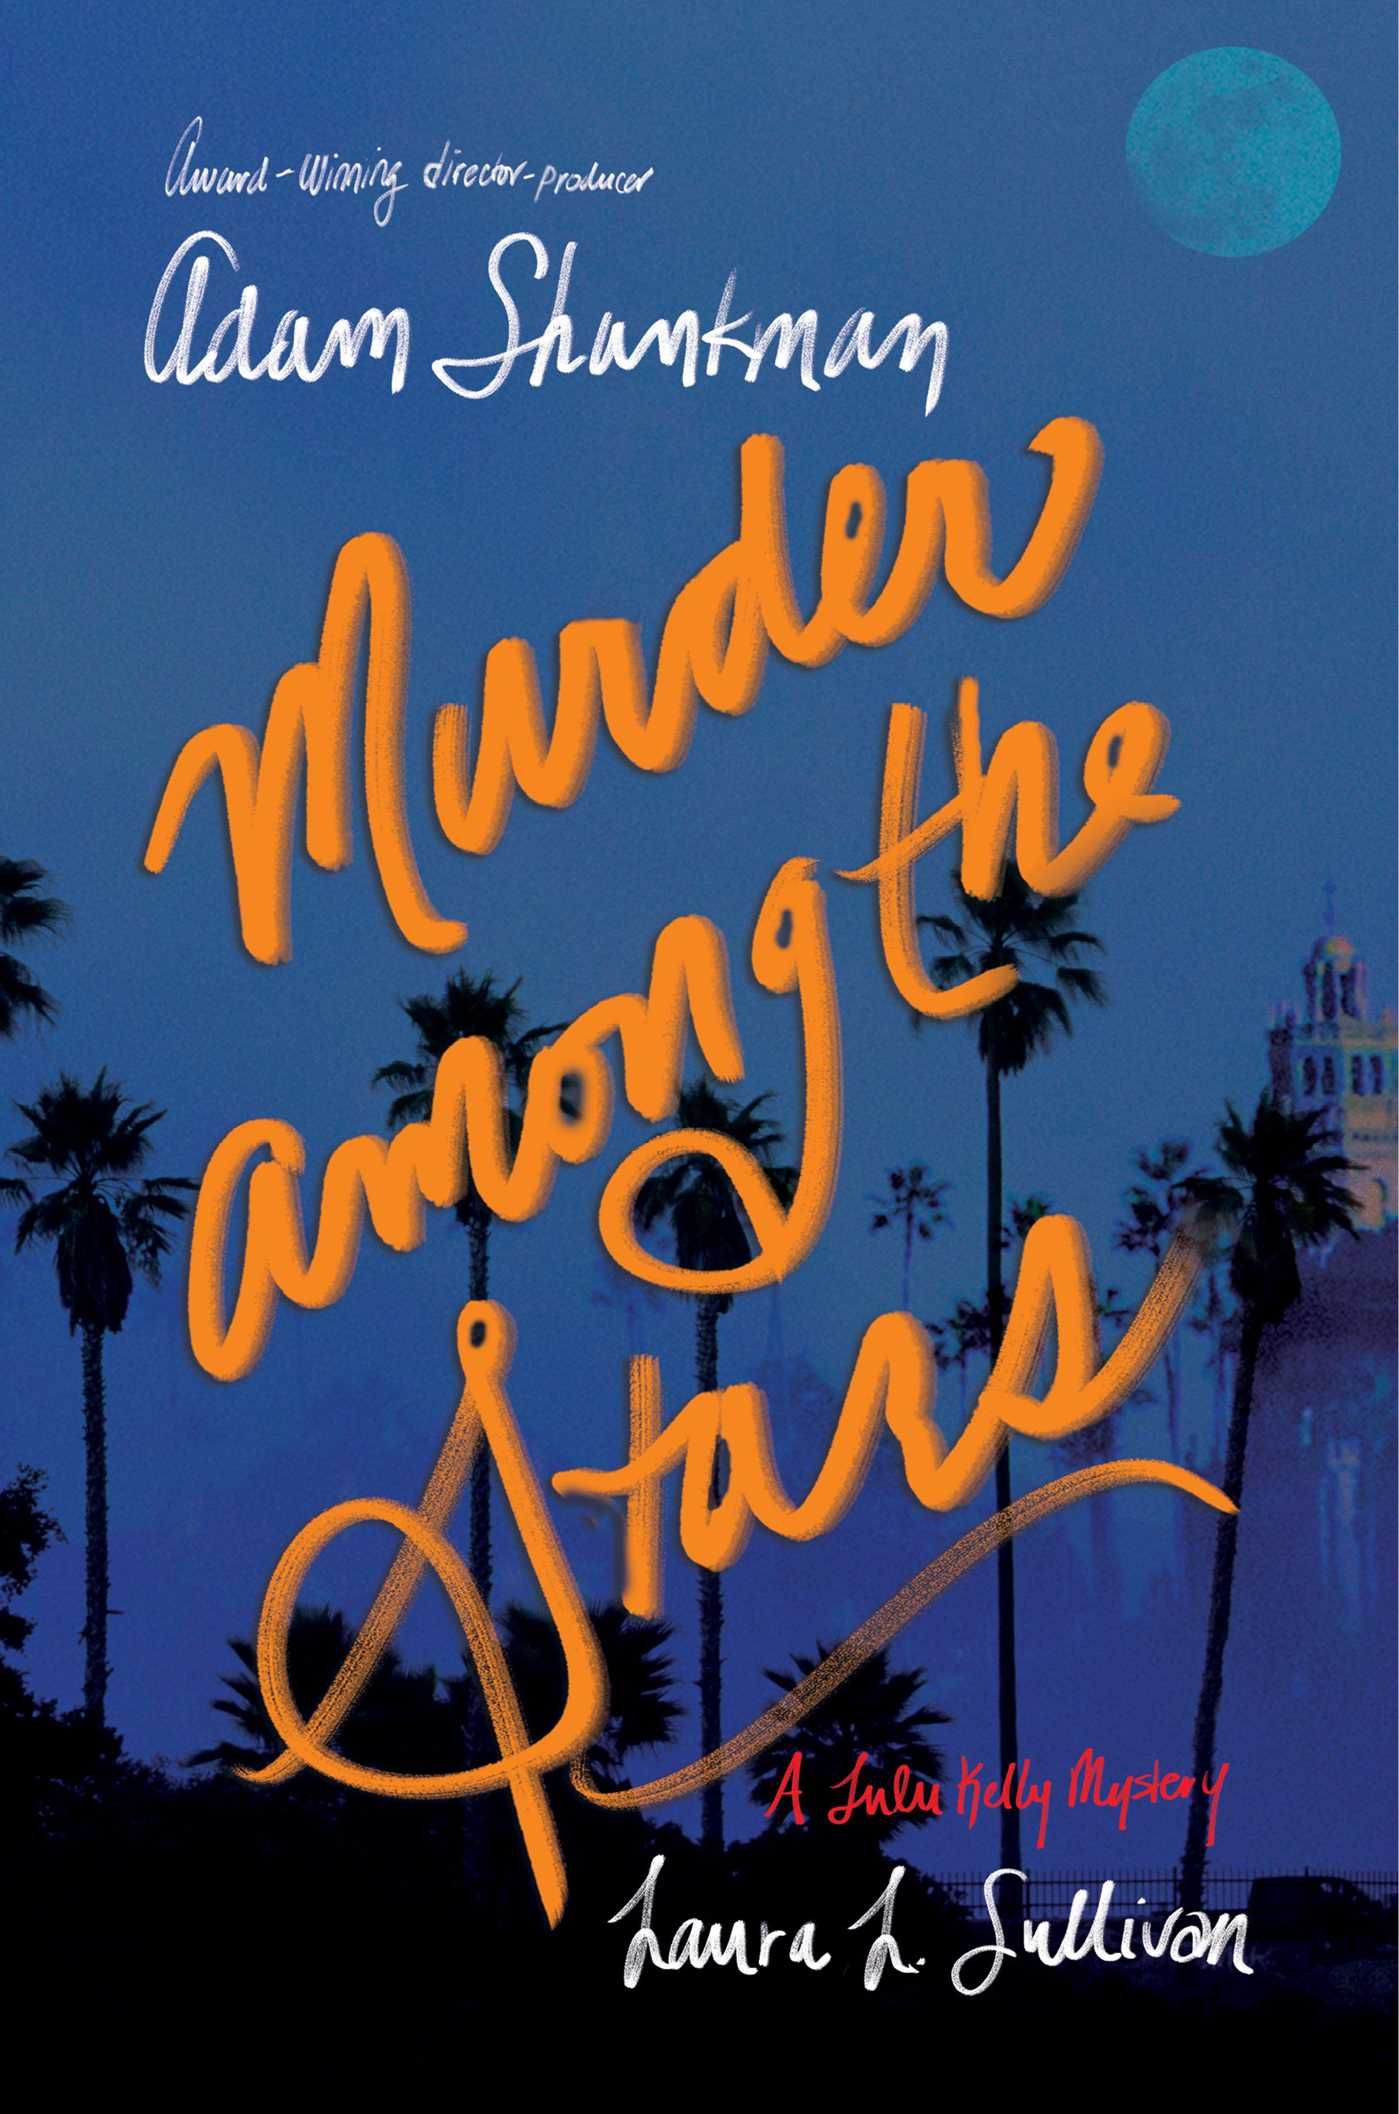 Murder among the stars 9781481447928 hr